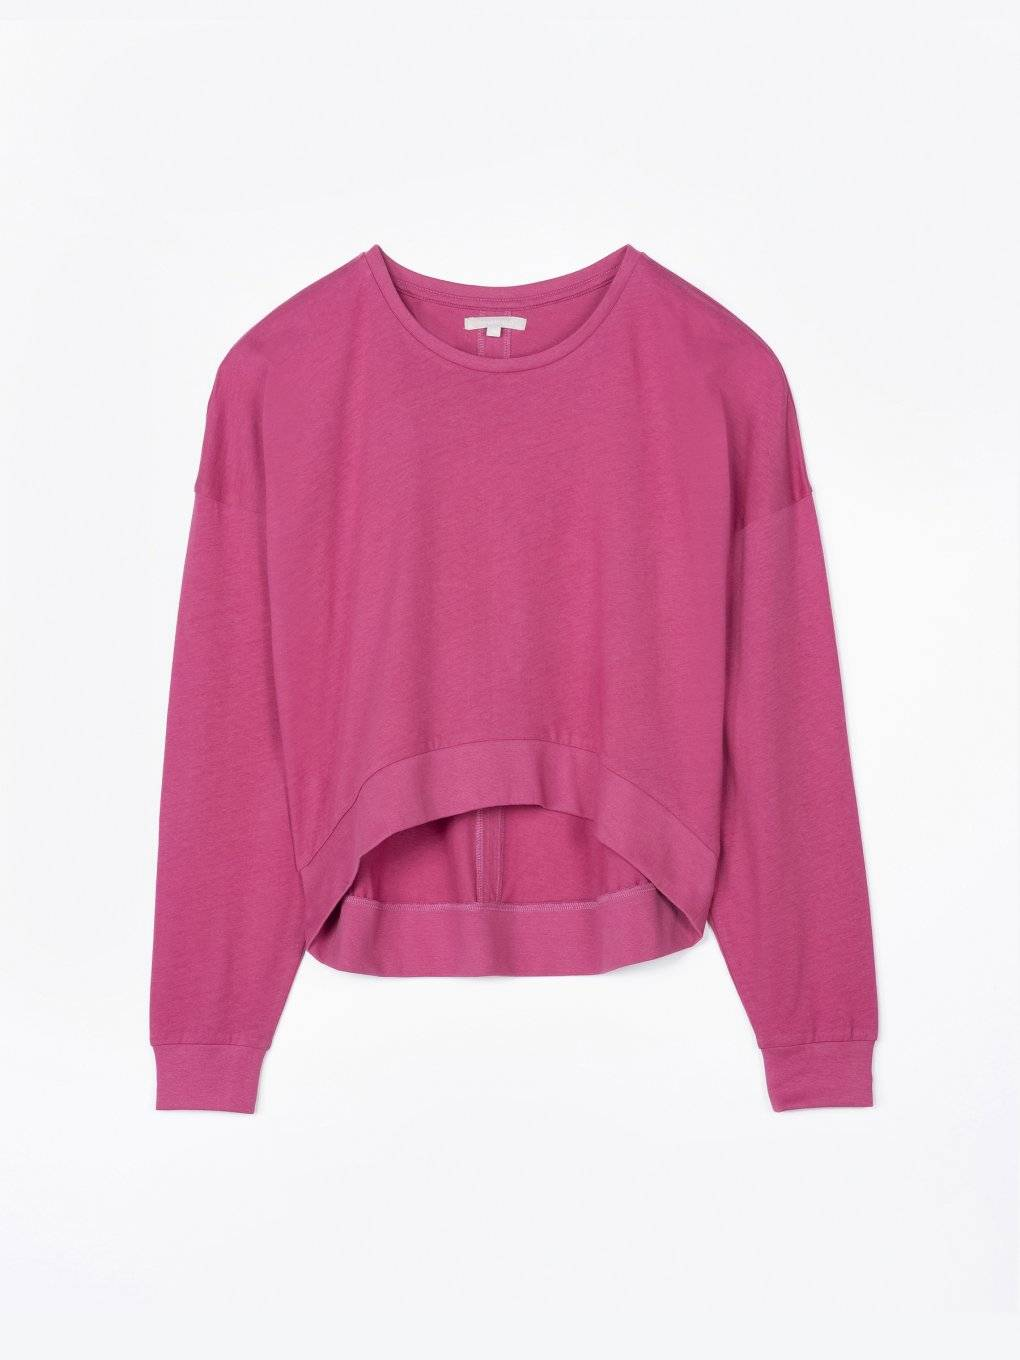 Cropped long sleeve top